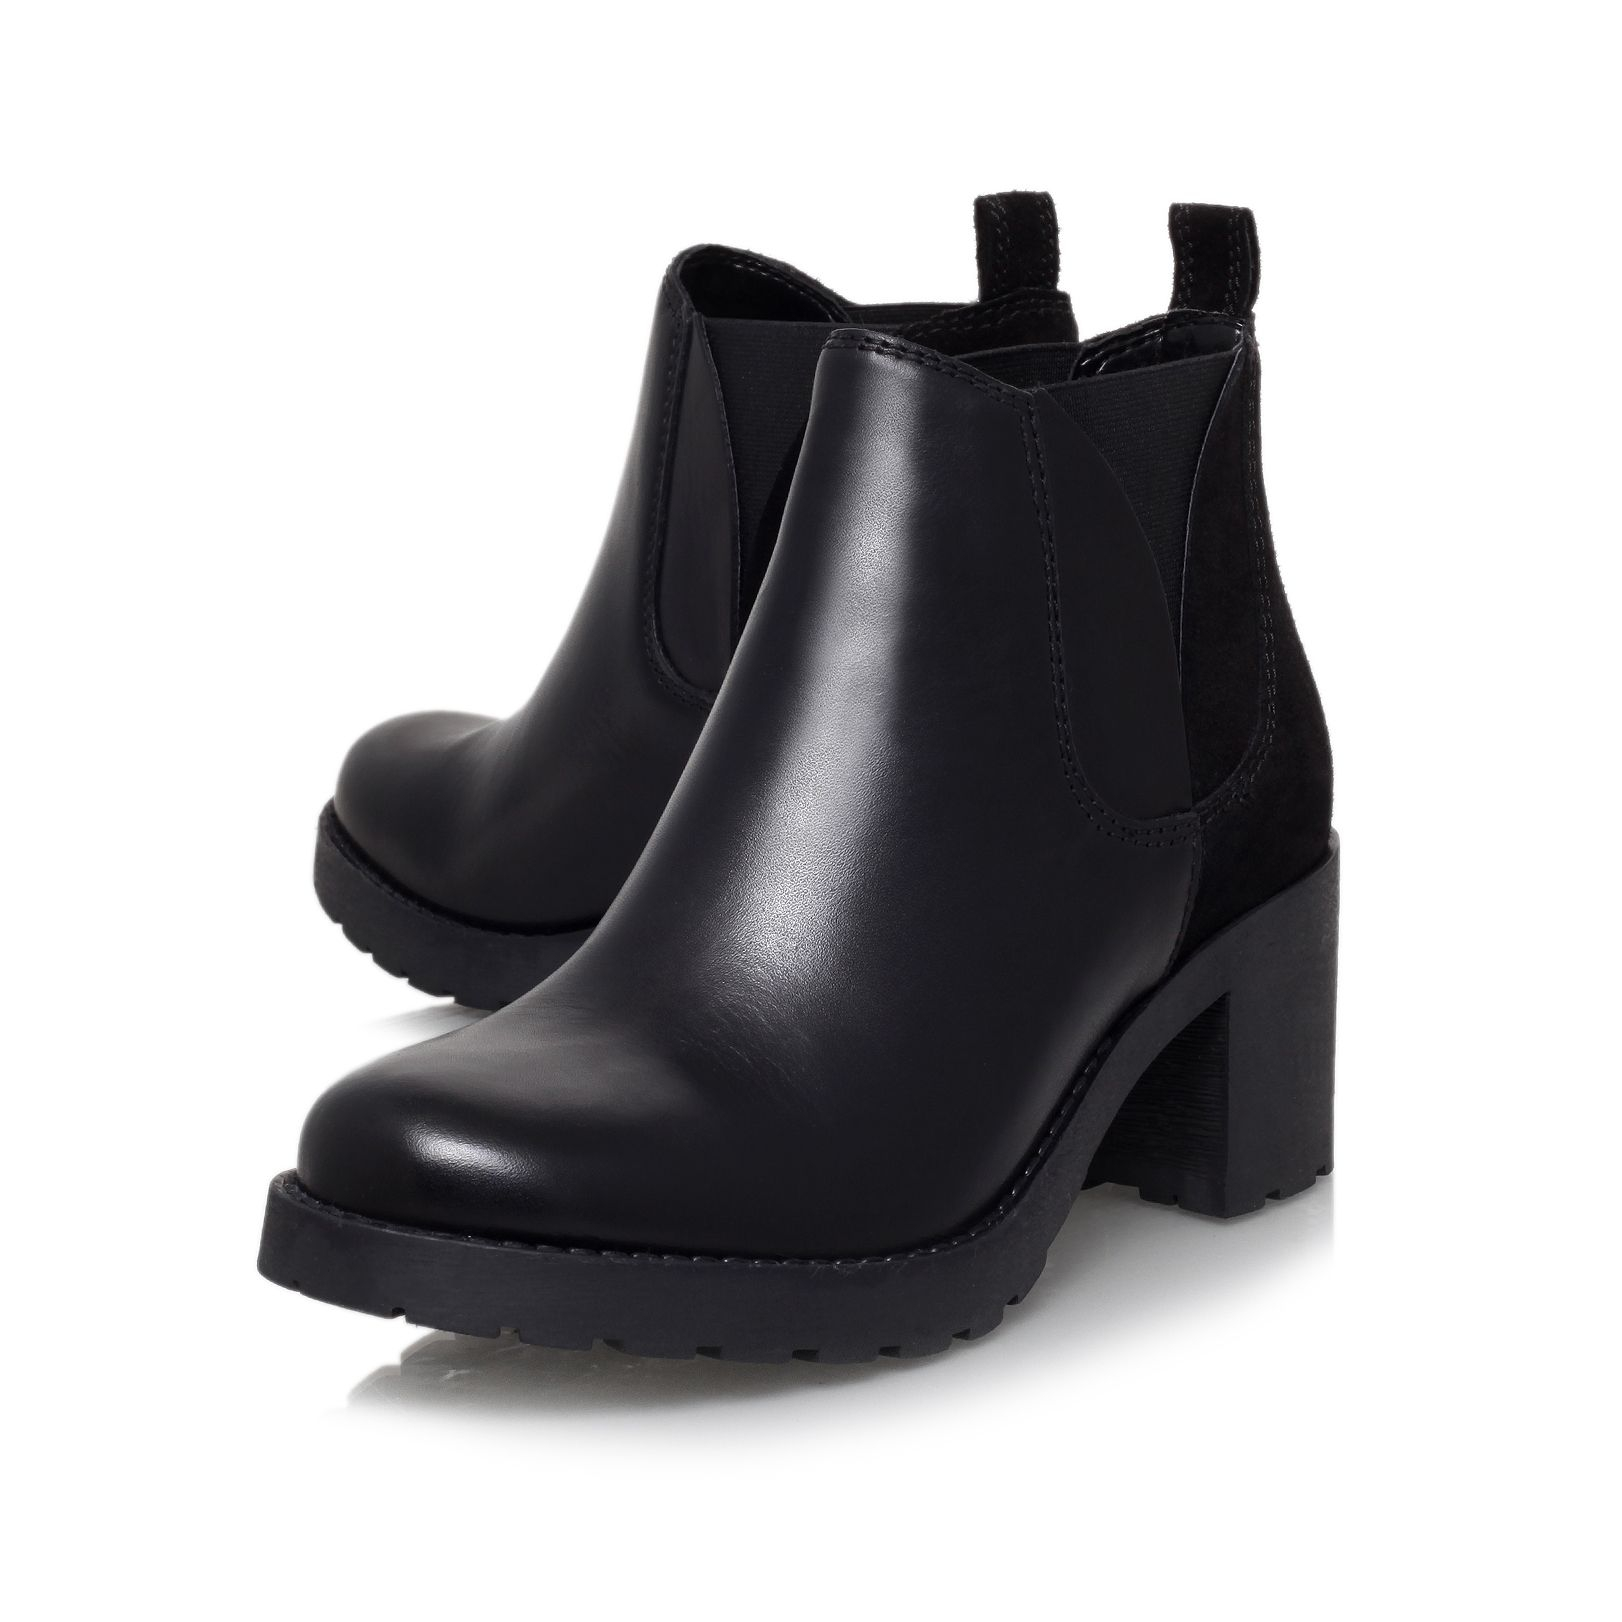 white ankle boots at house of fraser